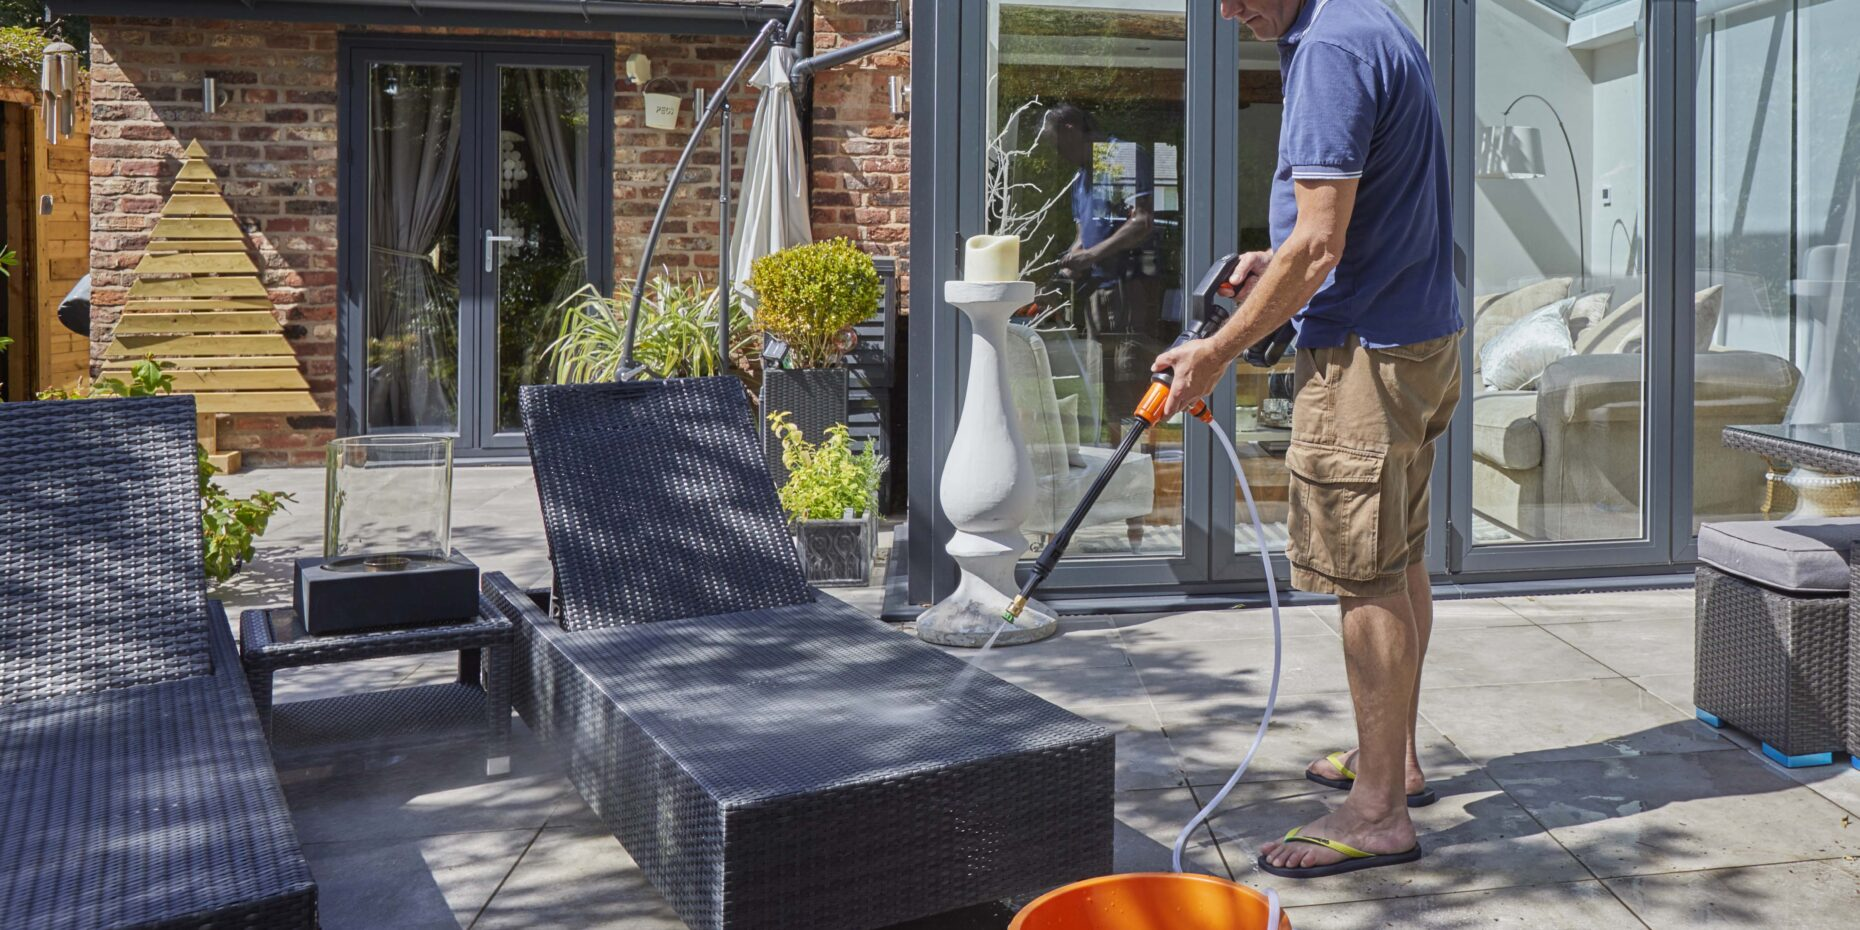 cleaning garden loungers with cordless pressure washer